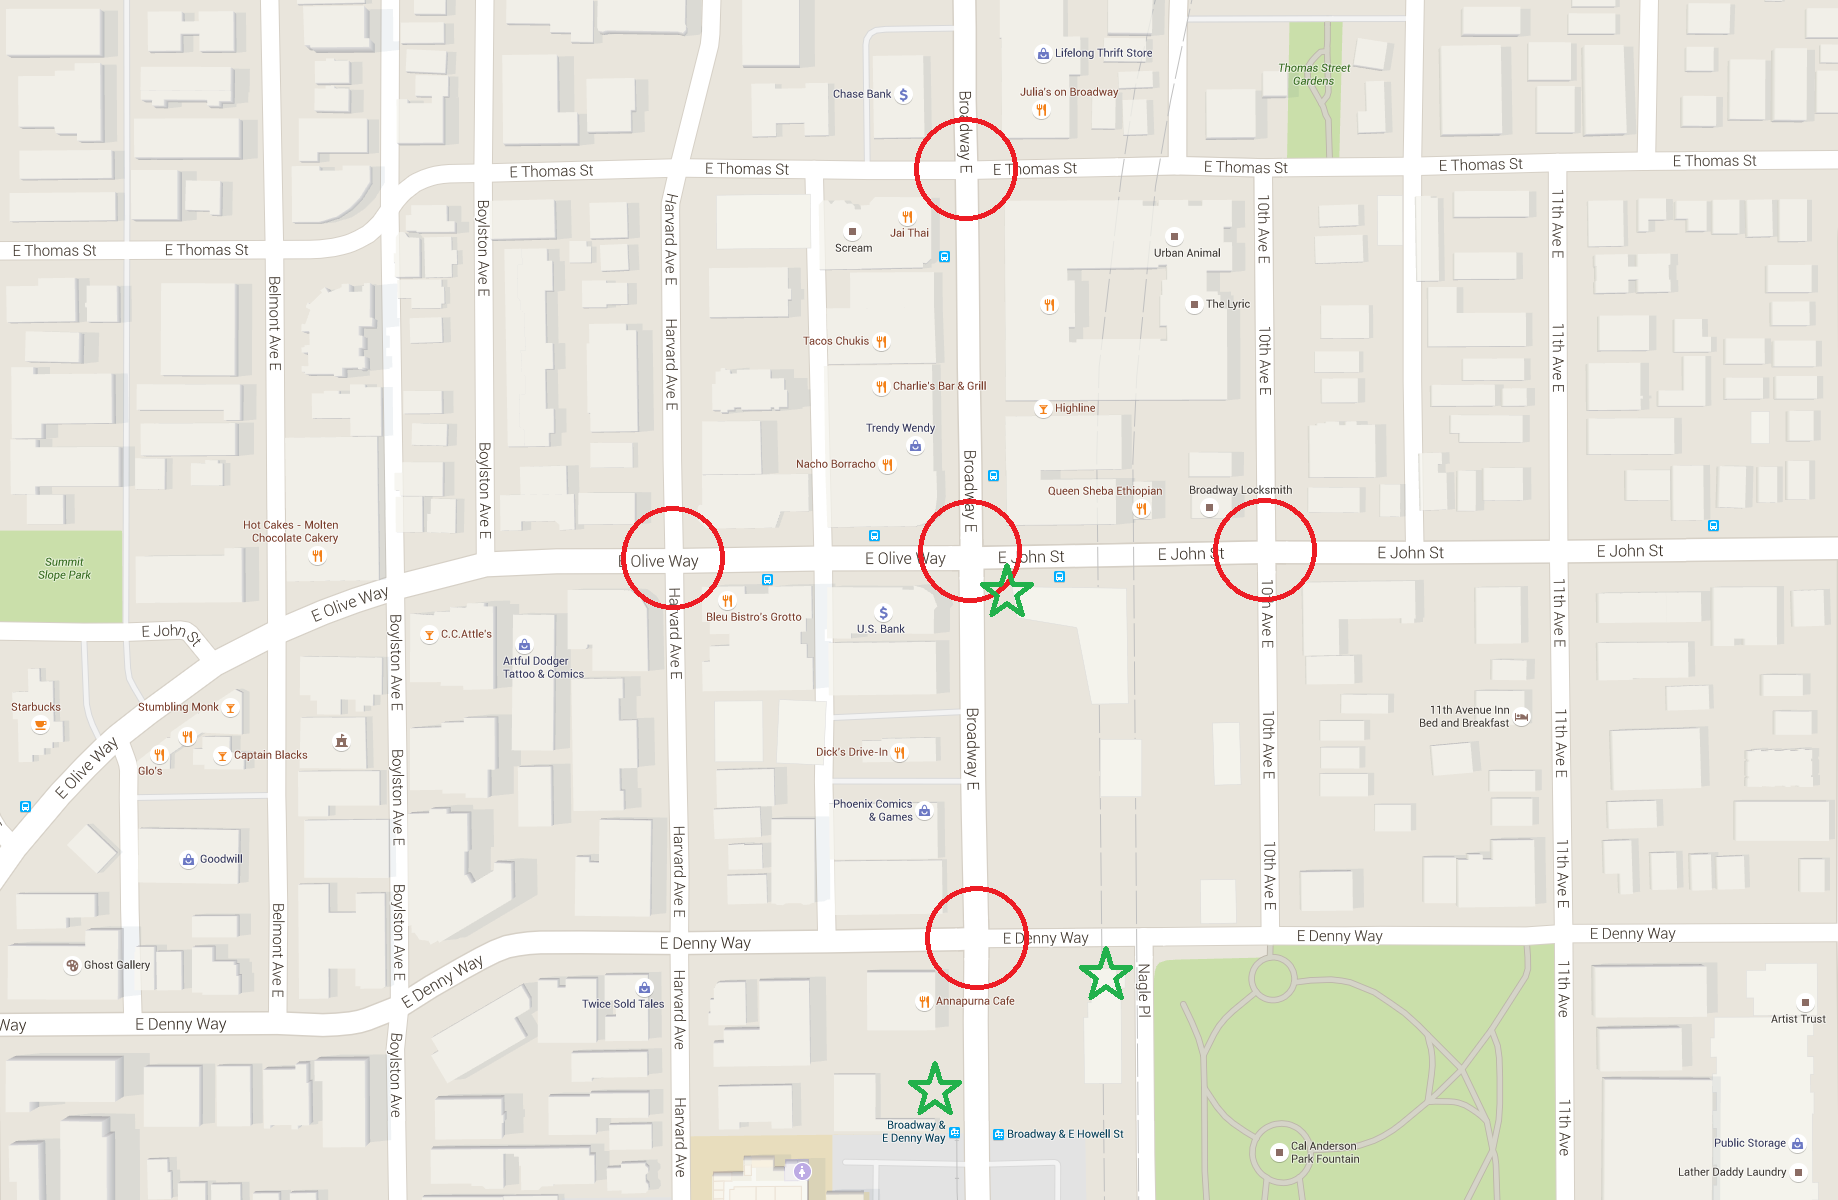 Assessed intersections are circled in red, station entrances are marked with green stars.